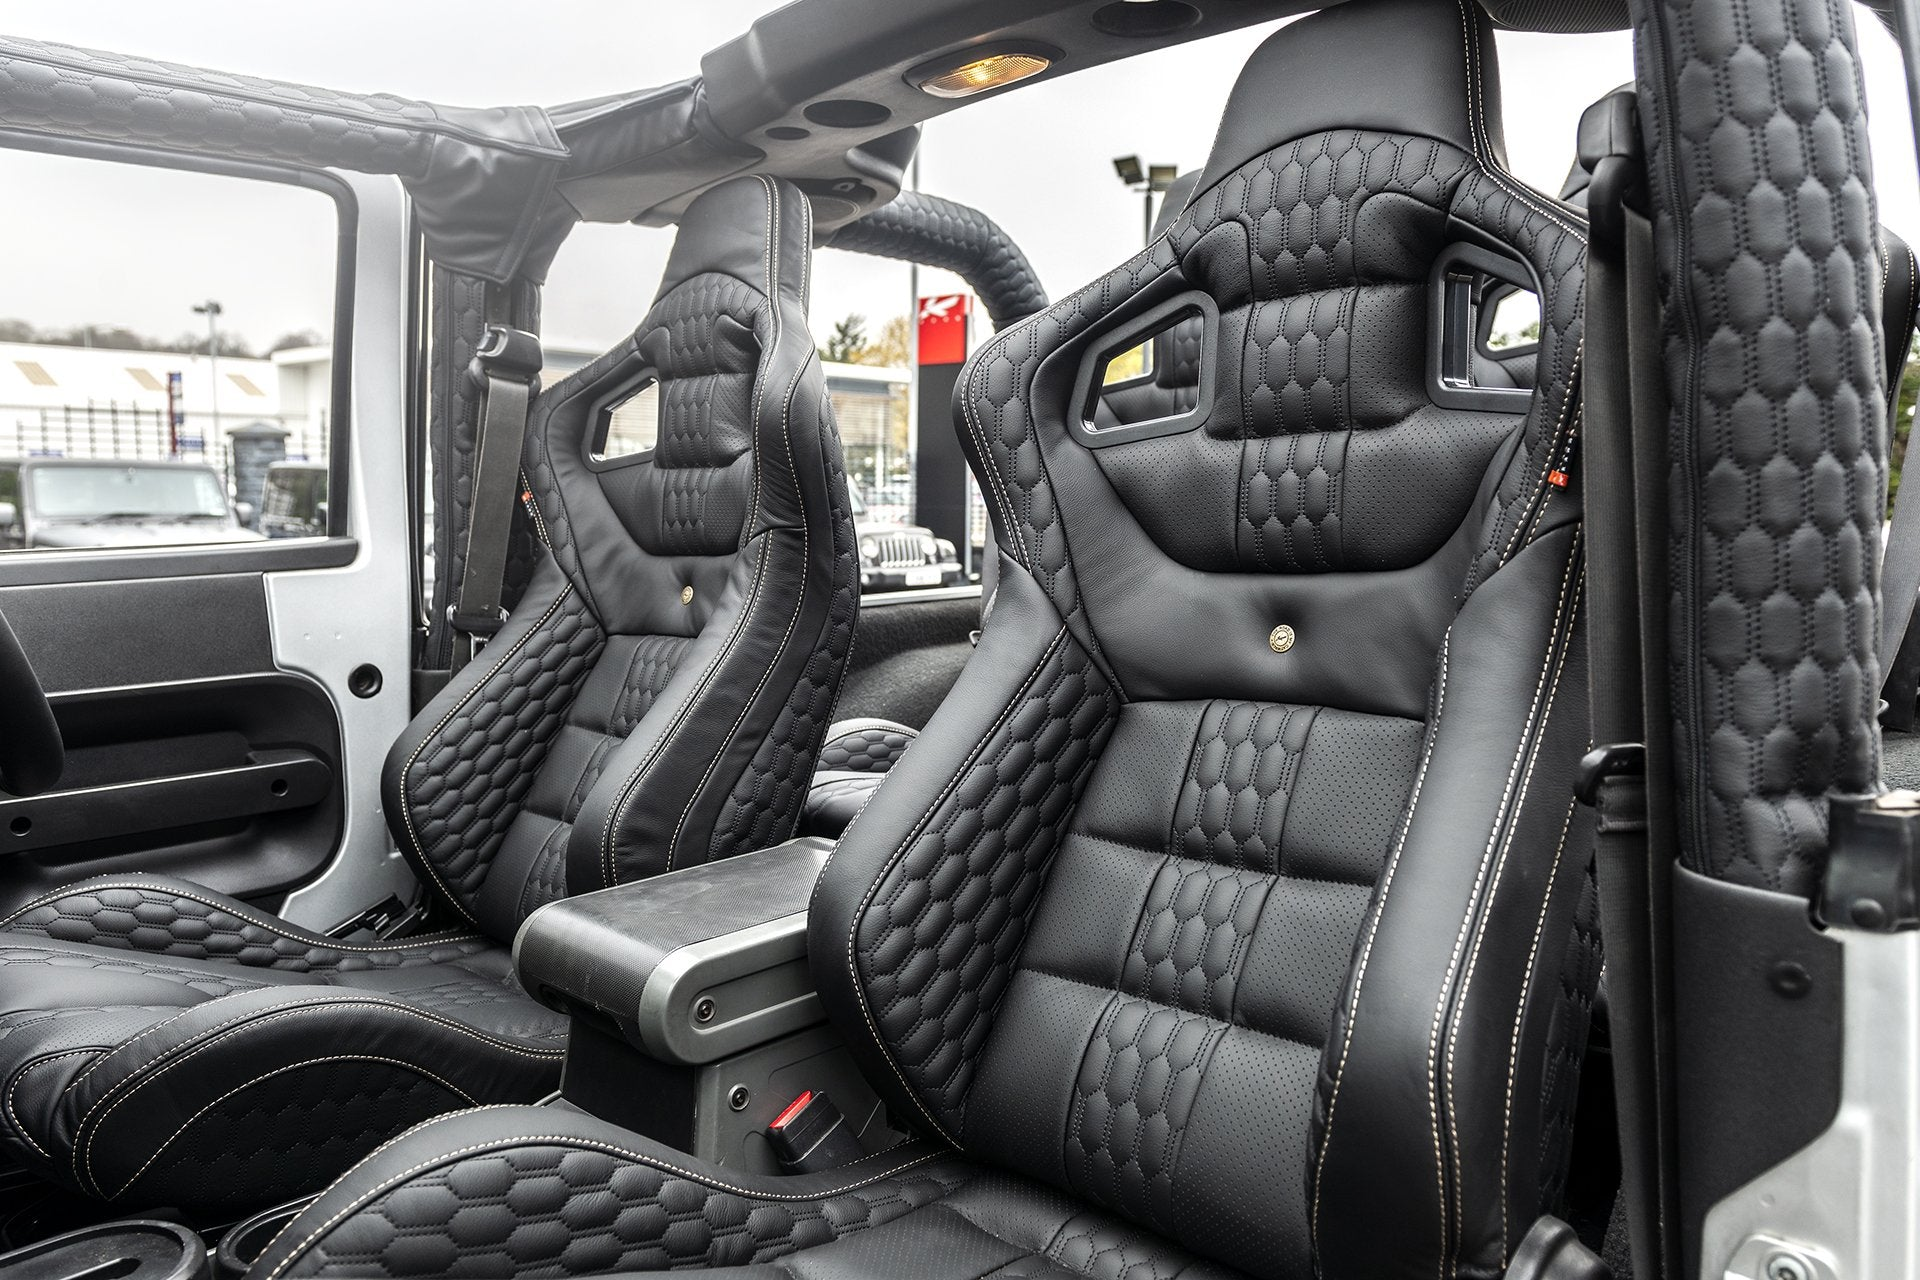 Jeep Wrangler Jk (2007-2018) 2 Door Leather Interior by Chelsea Truck Company - Image 1439